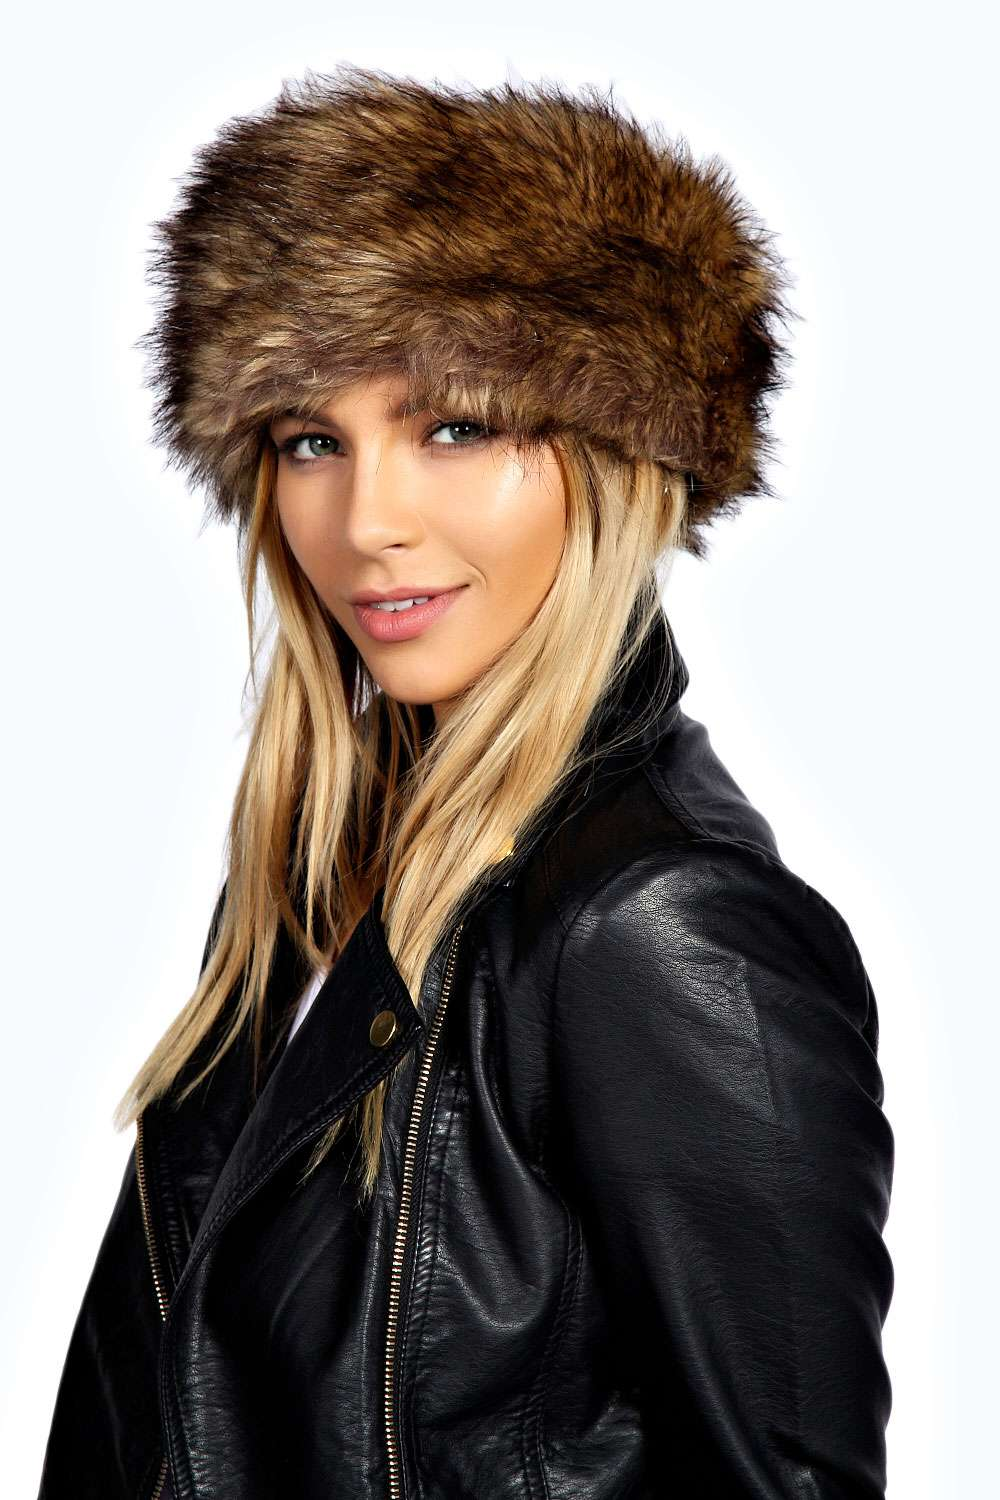 The authentic luxurious Black Fox on this women's faux fur headband goes with every hair color and elevates your look to one that will be the envy of every other woman in the room or on the slopes. Complete the look with a gorgeous Black Fox faux fur pull-through.